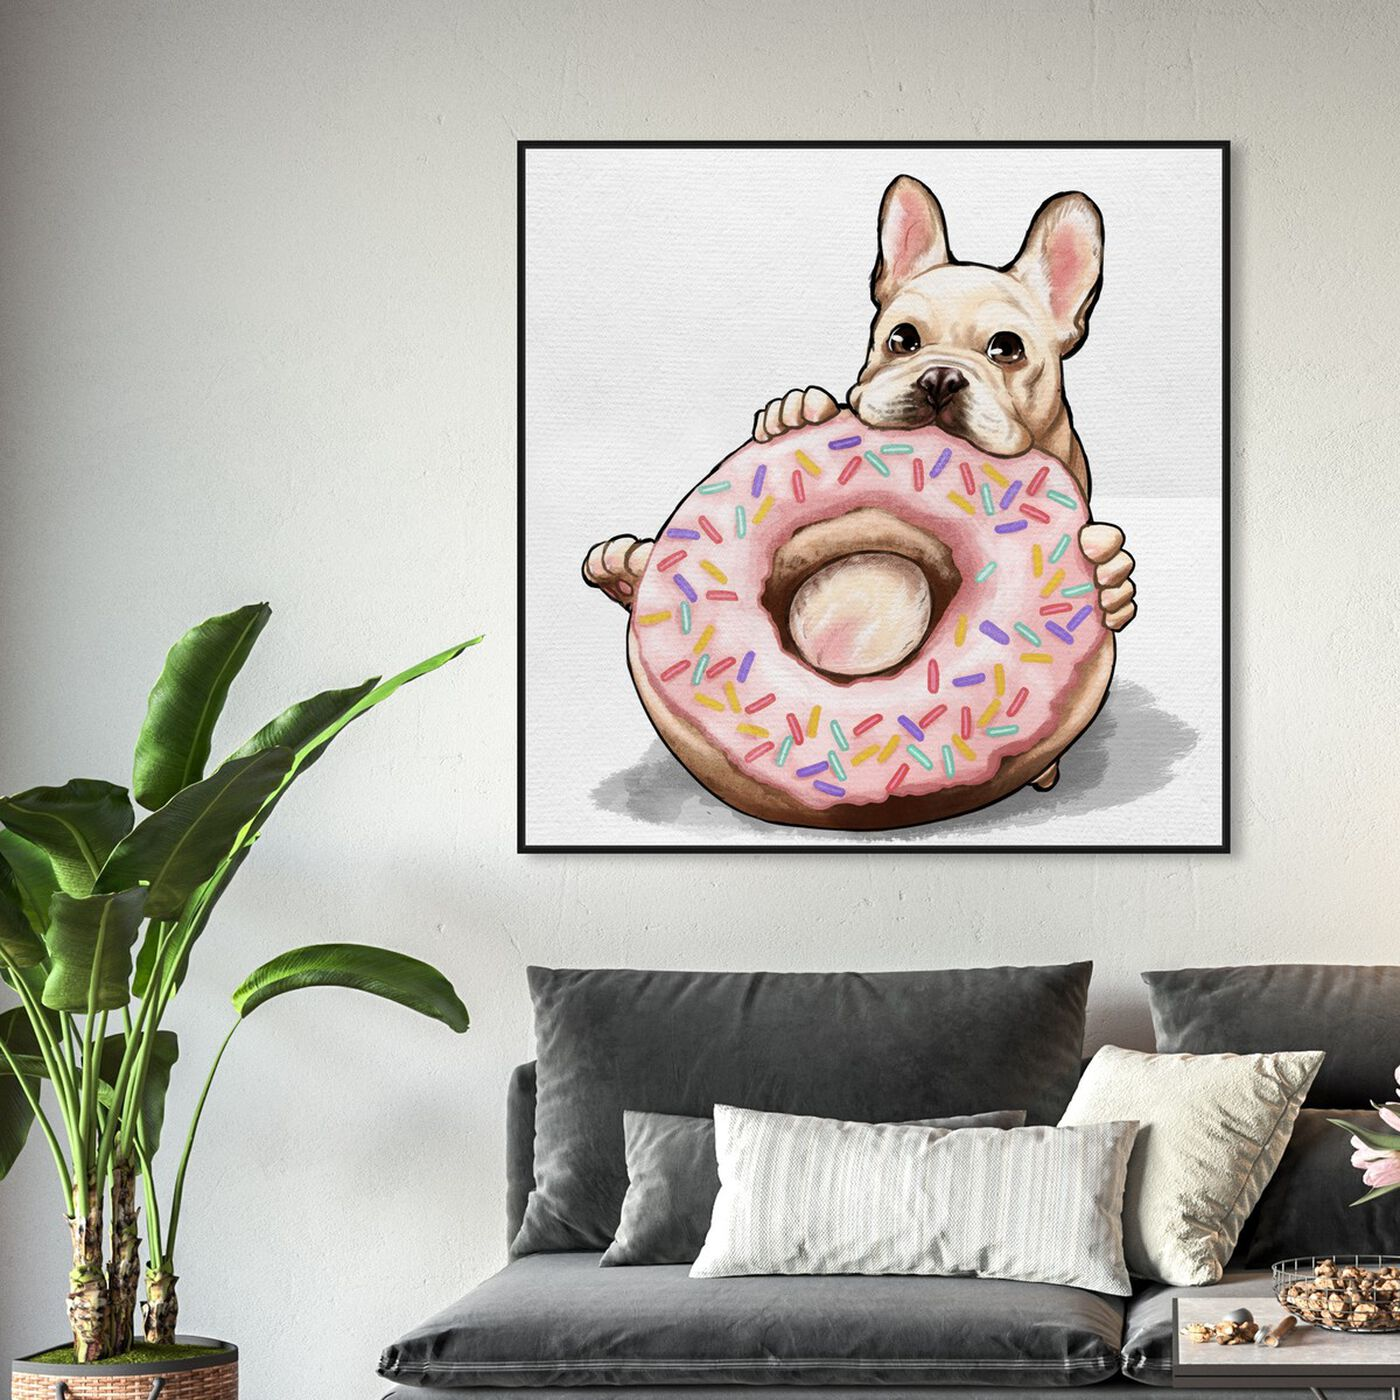 Hanging view of Donut Frenchie featuring animals and dogs and puppies art.